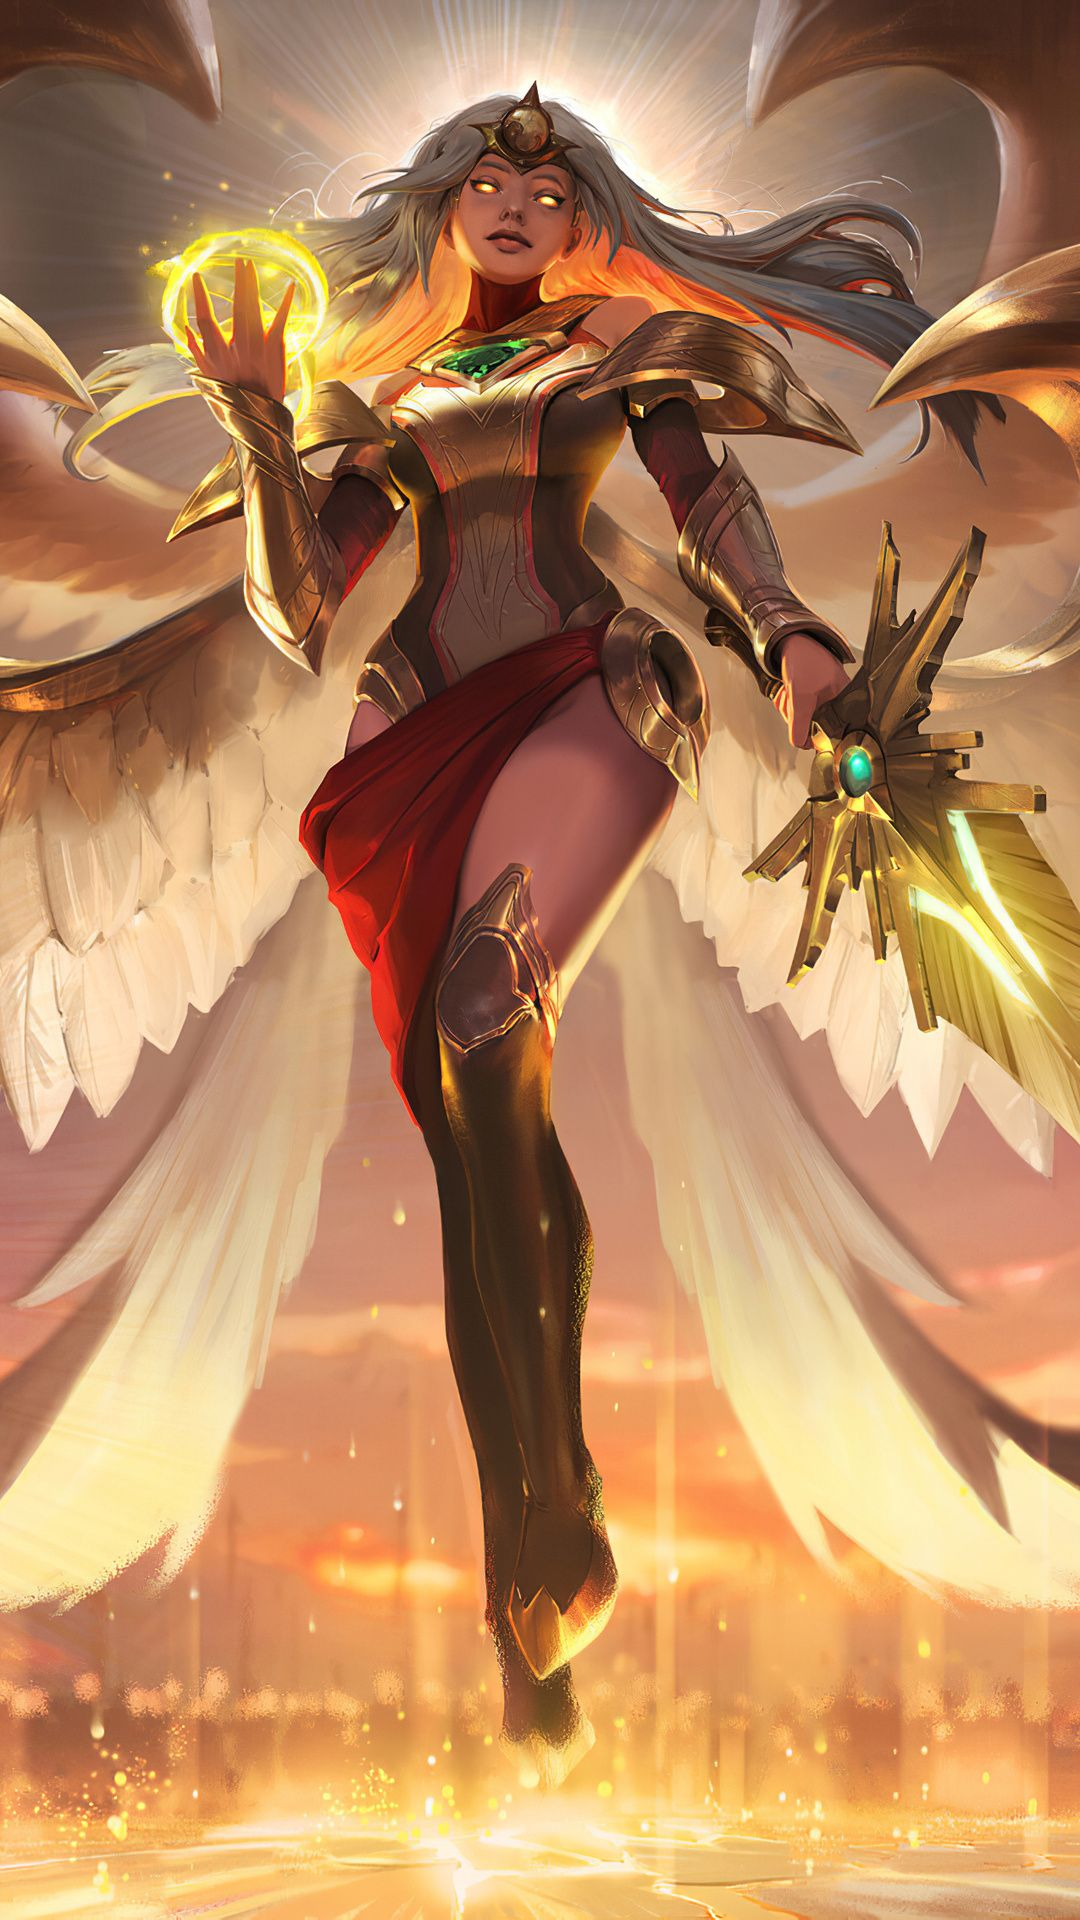 Kayle League Of Legends 4k Mobile Wallpaper (iPhone